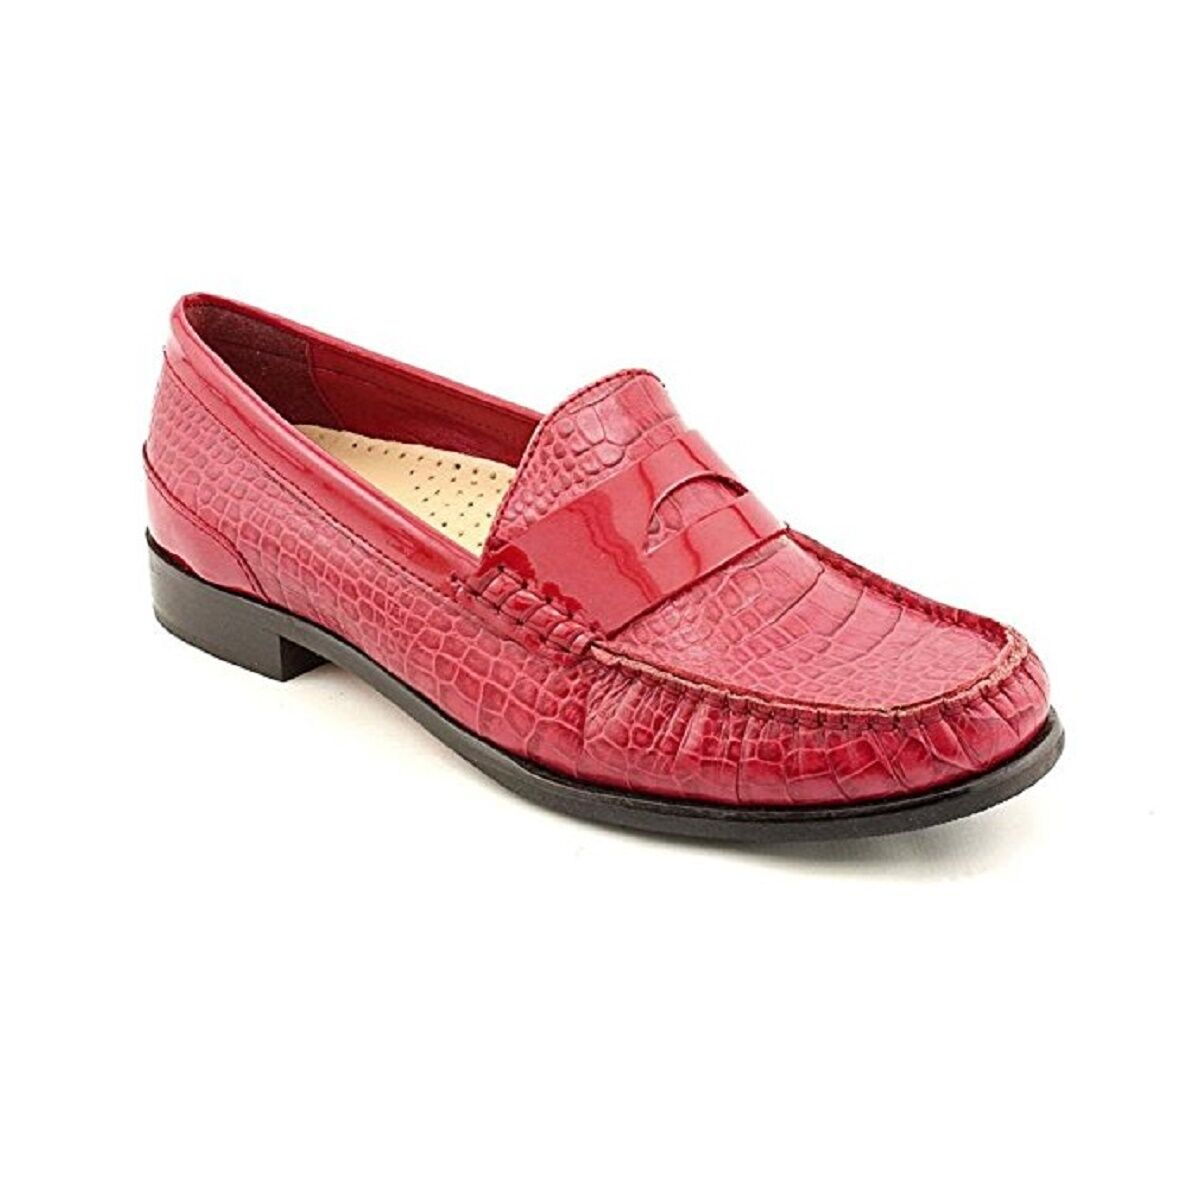 Cole Haan LAUREL Moc Red Croc Print Leather Loafers Shoes Womens 6 NEW IN BOX